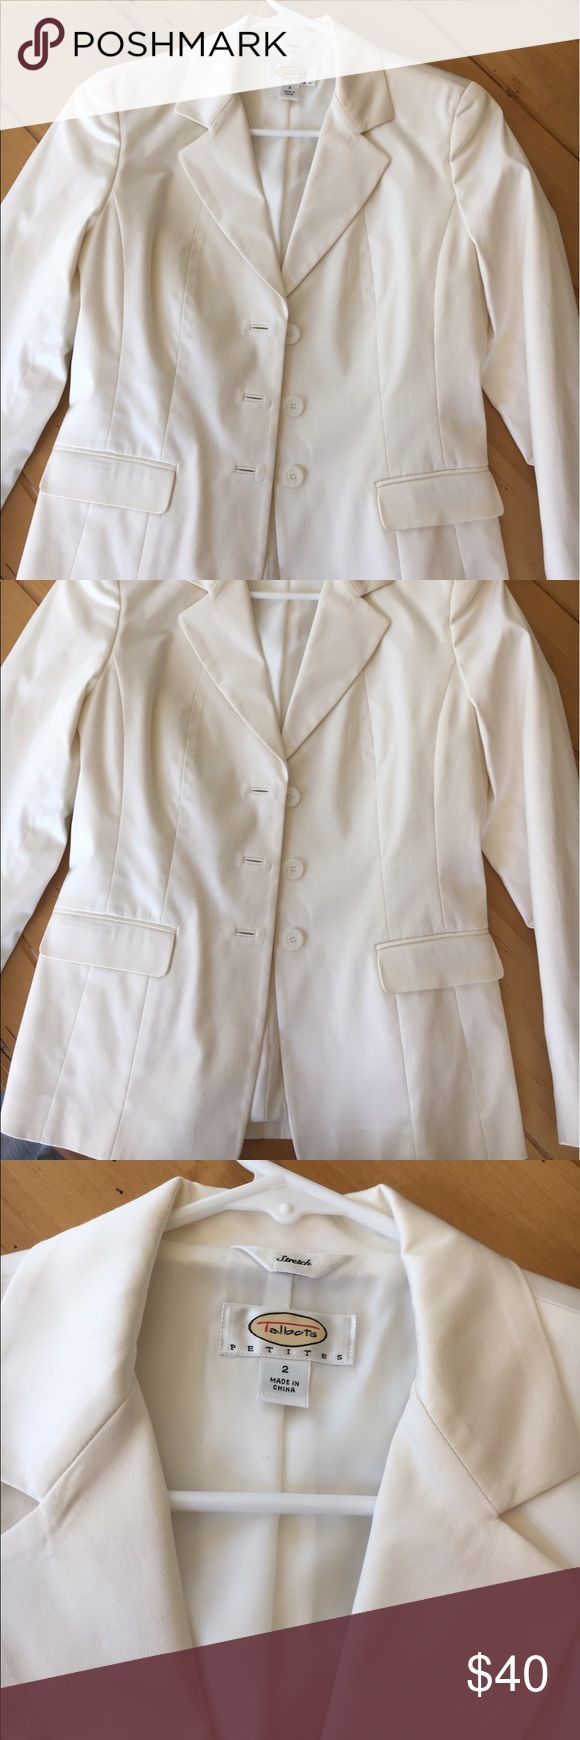 Talbots Petites suit jacket/blazer Versatile white/cream stretch jacket that can be worn with a suit or paired with a more casual outfit for a chic look; in great condition - only worn once! Just needs to be ironed/steamed Talbots Jackets & Coats Blazers